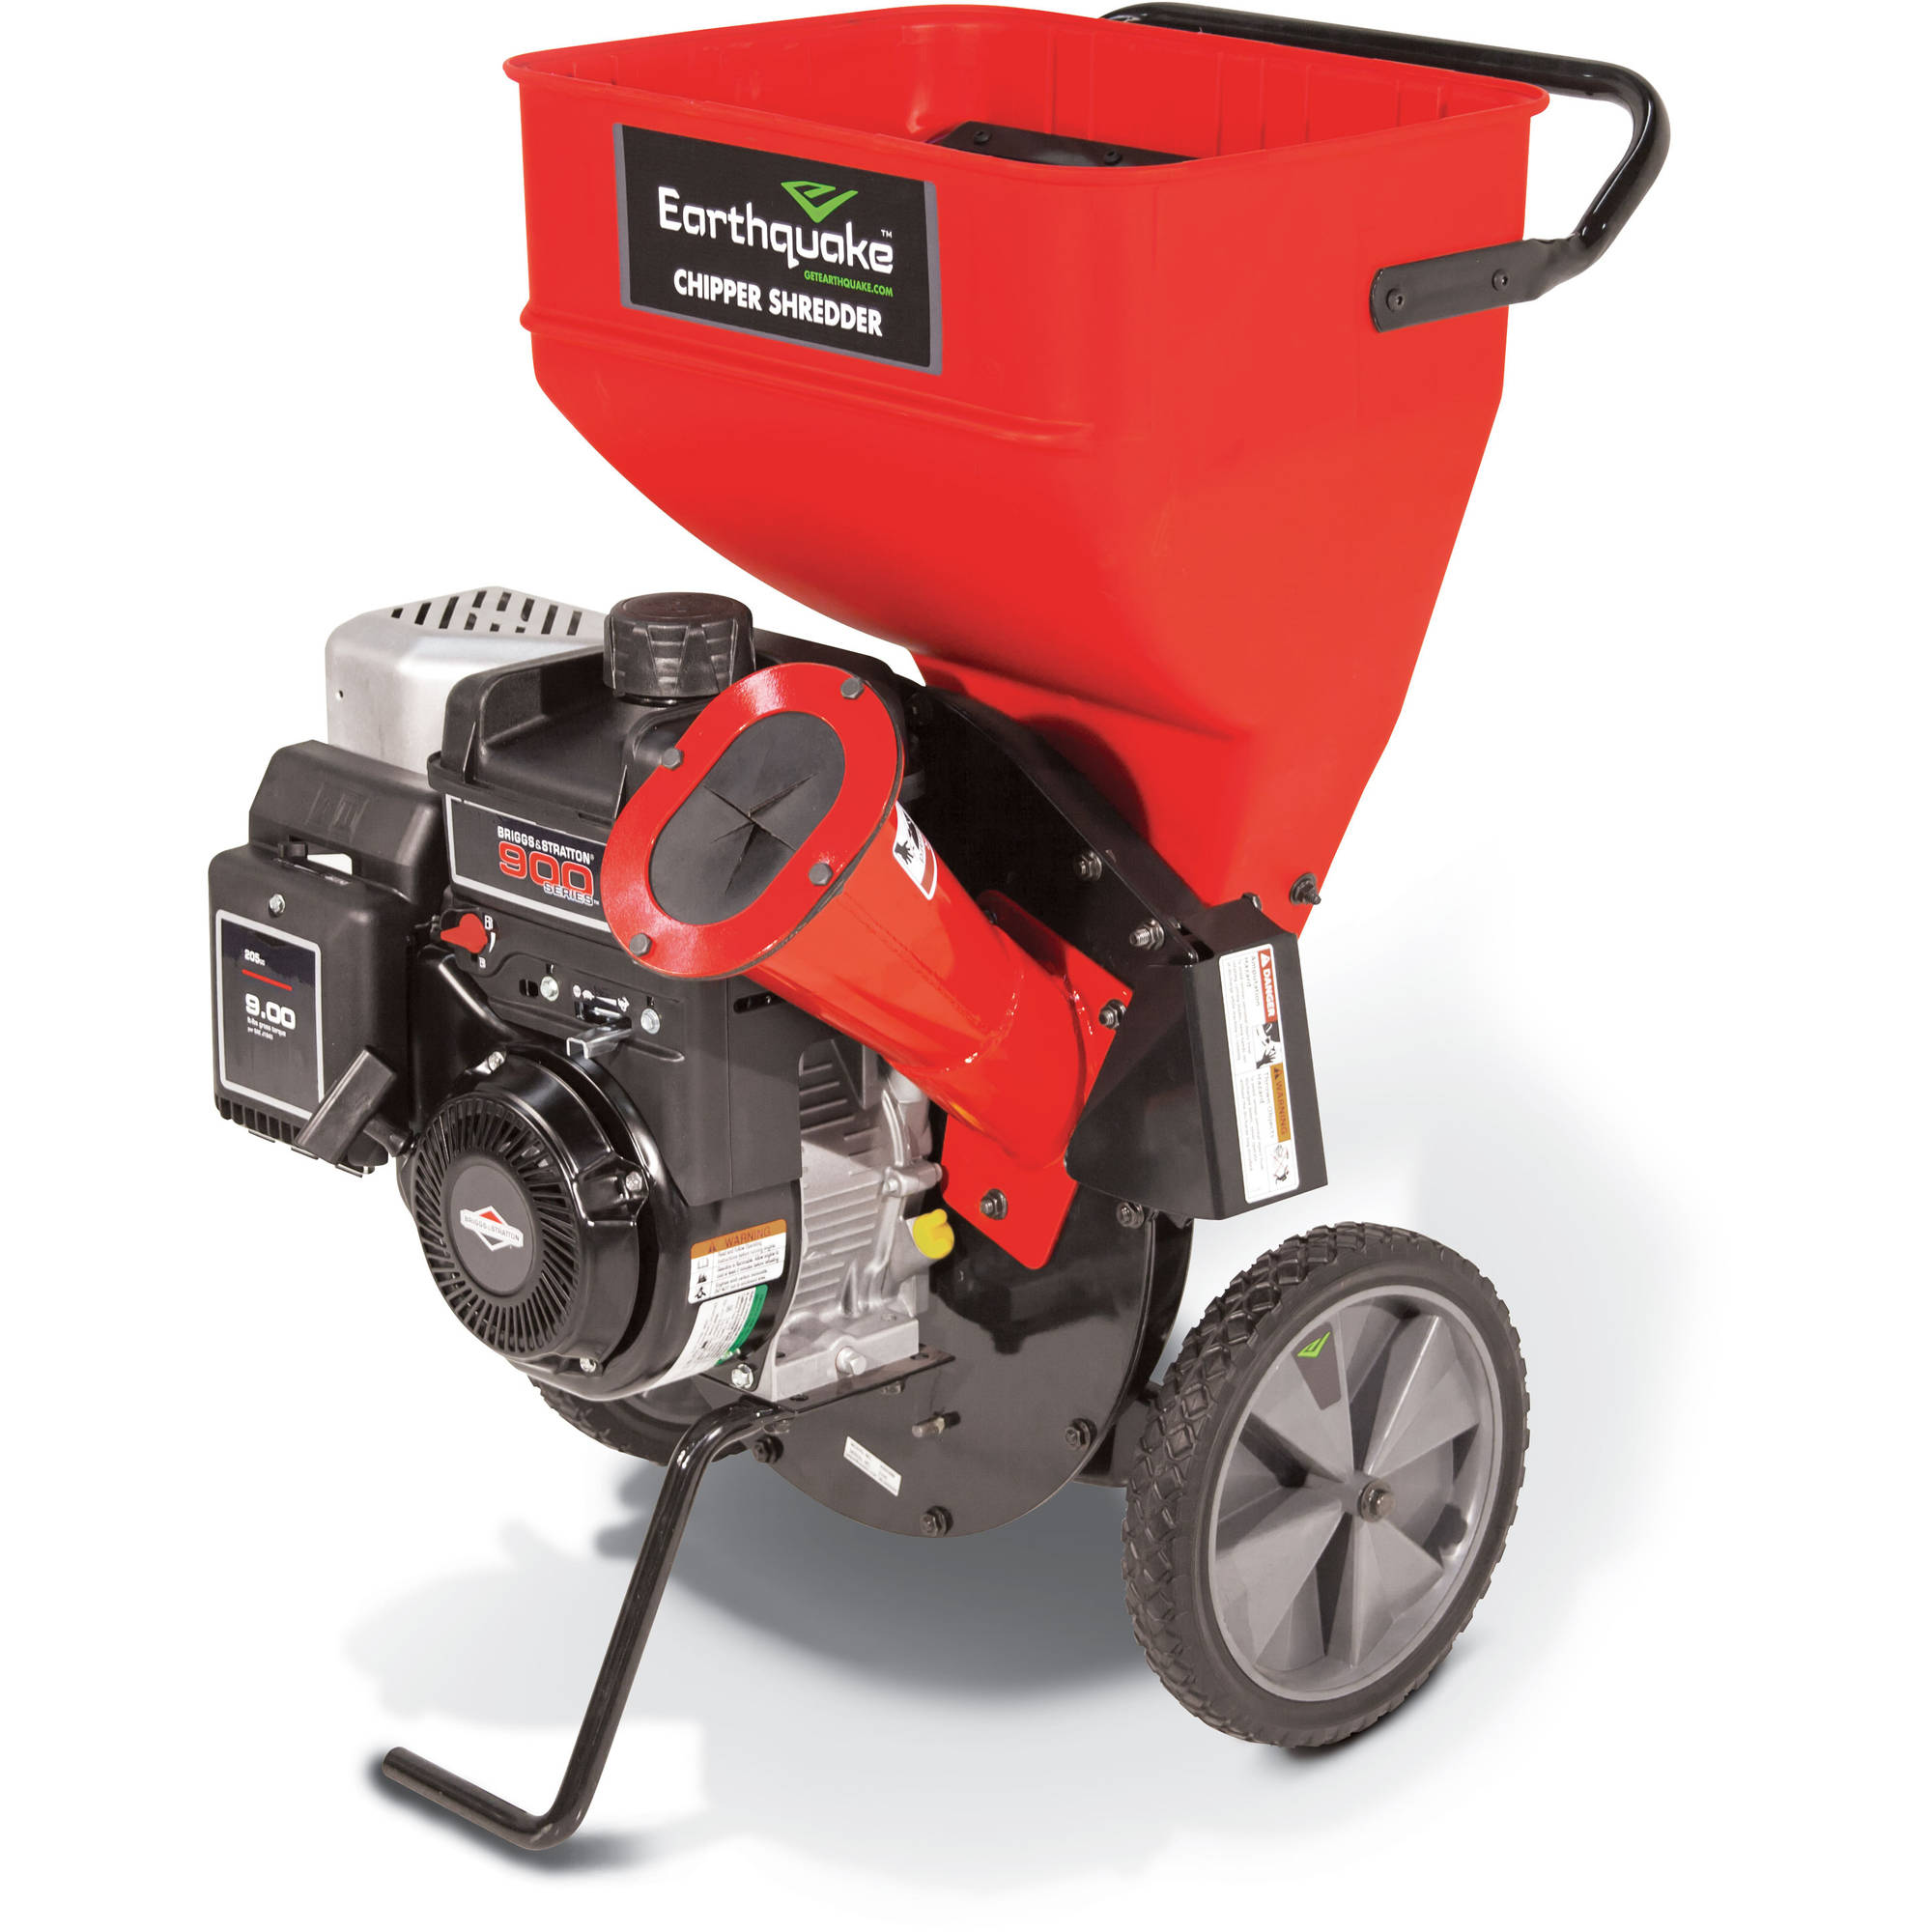 Earthquake Chipper Shredder 206cc Briggs and Stratton Engine, Red